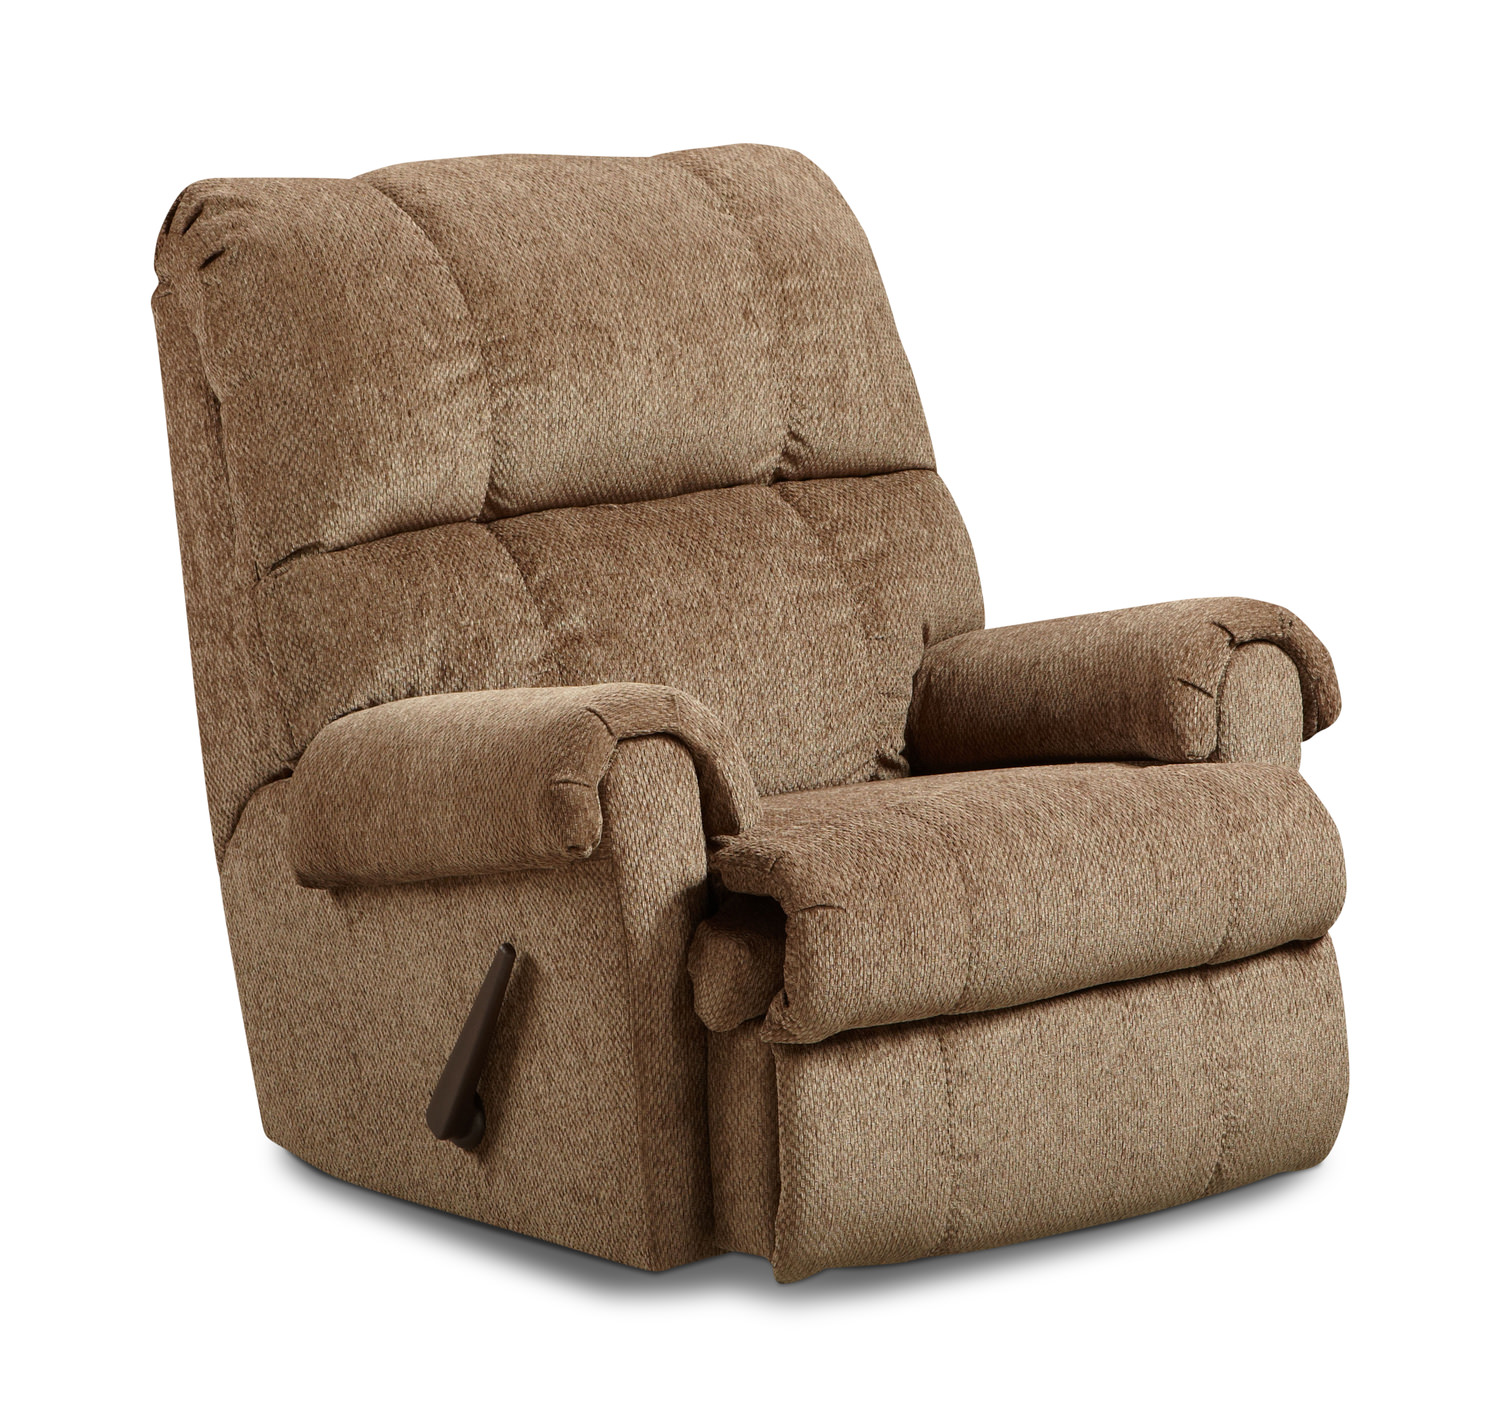 Murphy rocker recliner dock86 for Bulldog pad over chaise rocker recliner